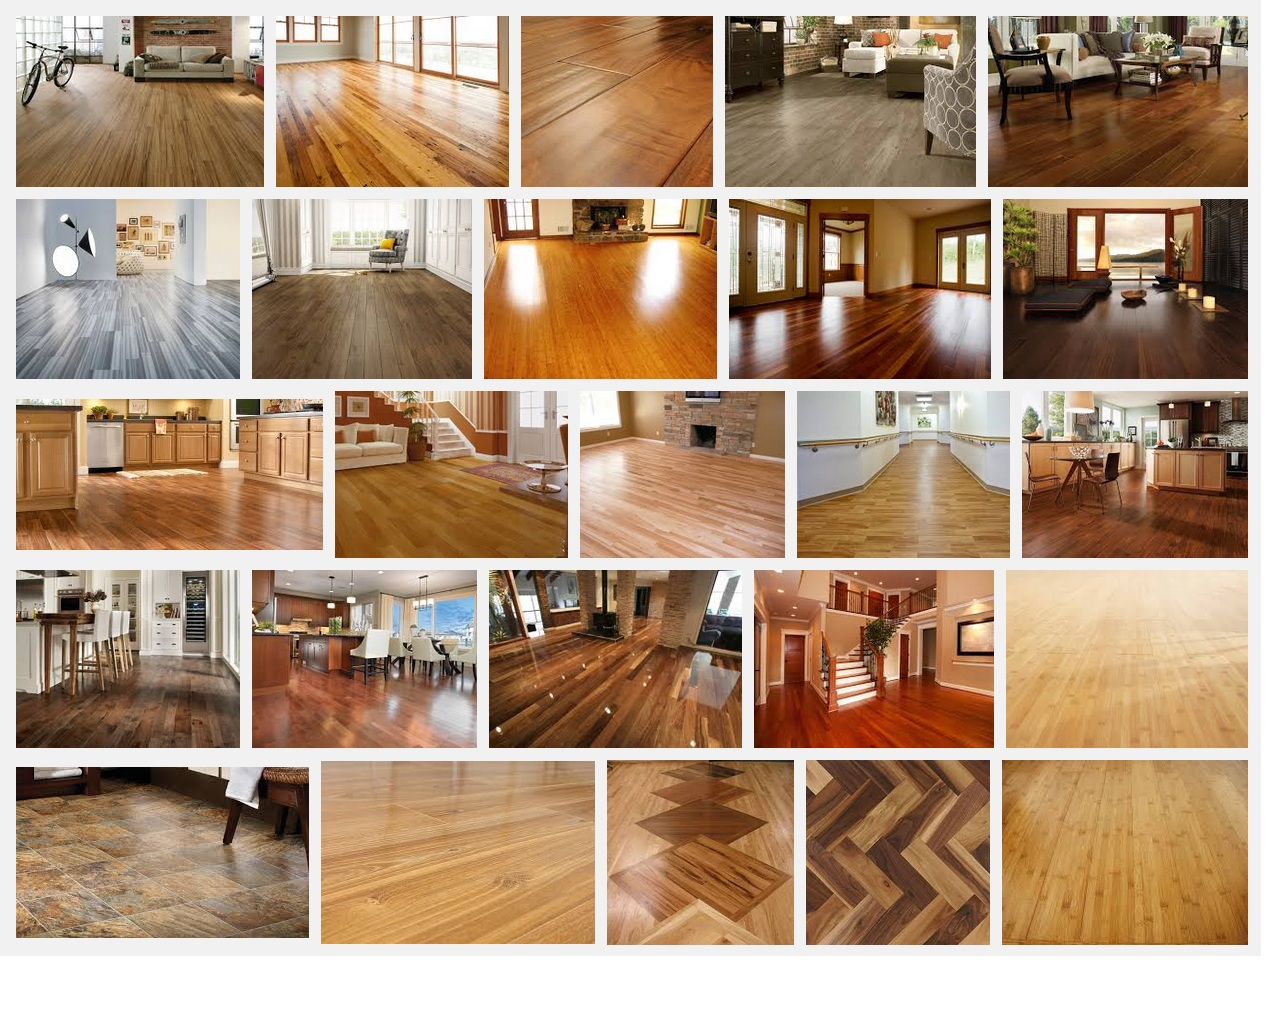 SOLID WOOD FLOORING VS ENGINEERED WOOD FLOORING VS LAMINATE WOOD ...